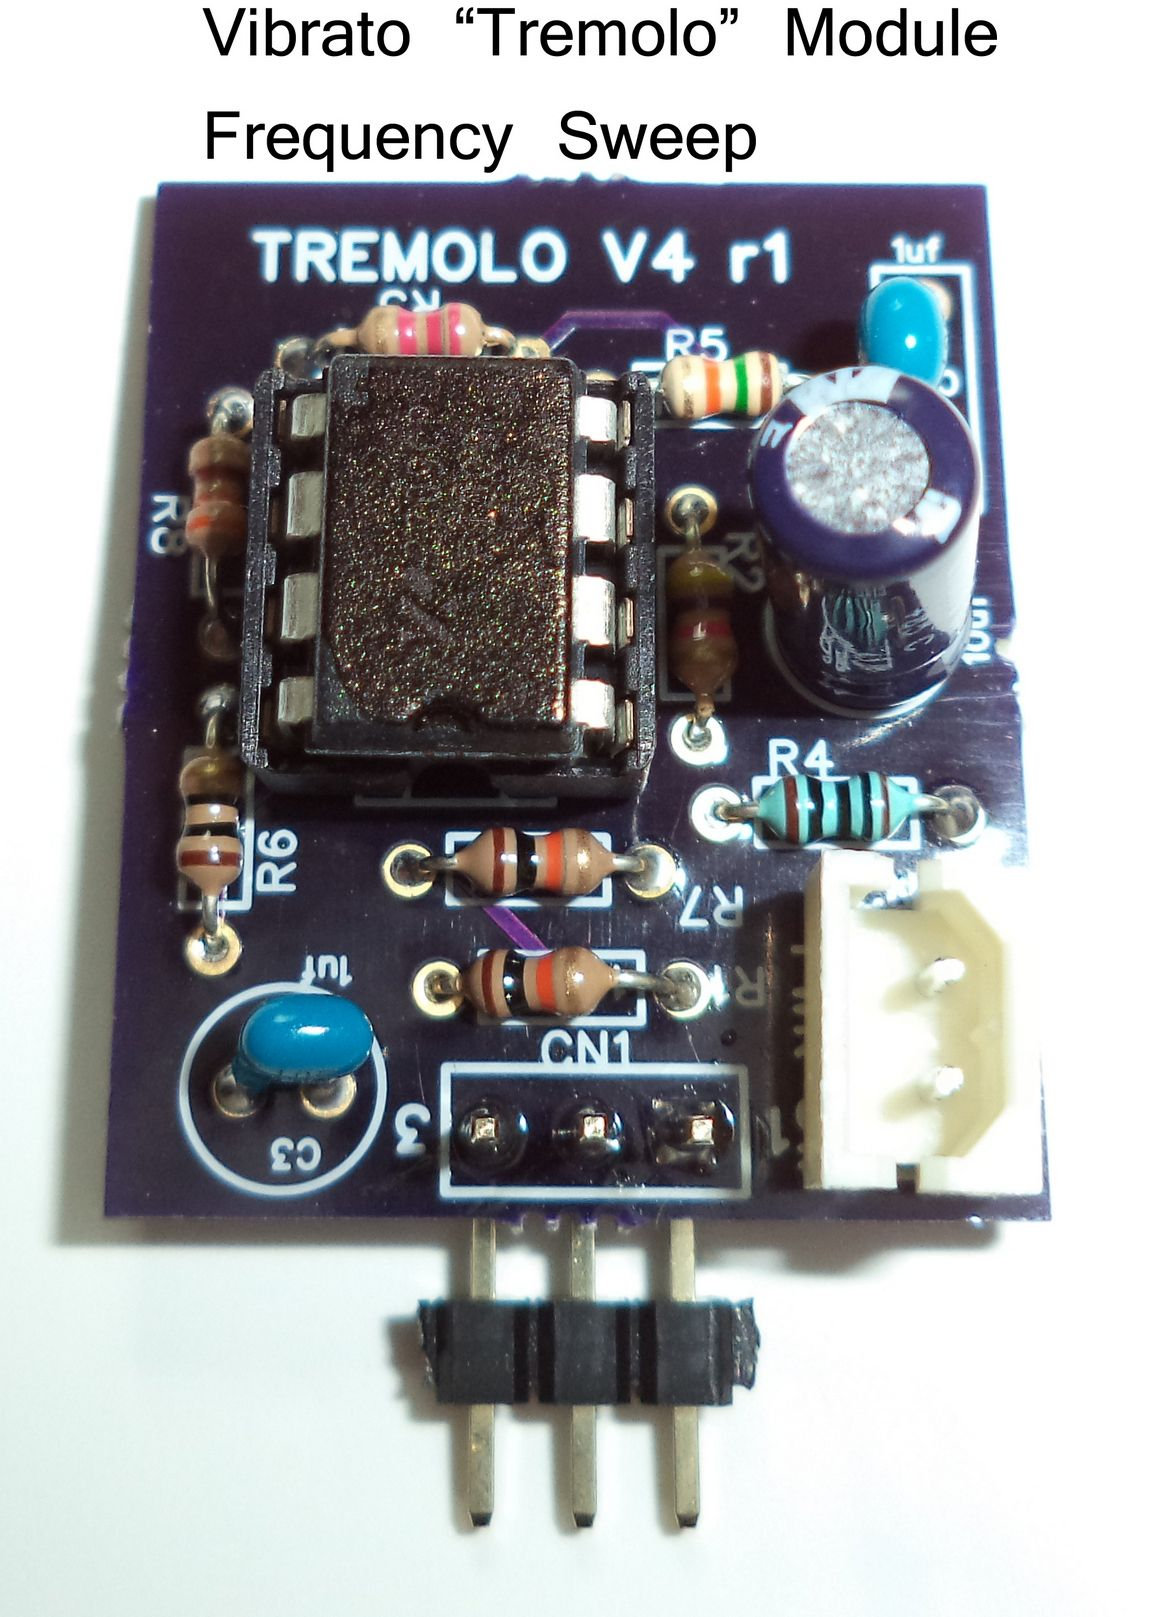 Ultrasonic Tremolo Frequency Sweep Module Plugs Into The Vibrato Generator Circuit And Buy To Provide Function Which Prevents Standing Waves